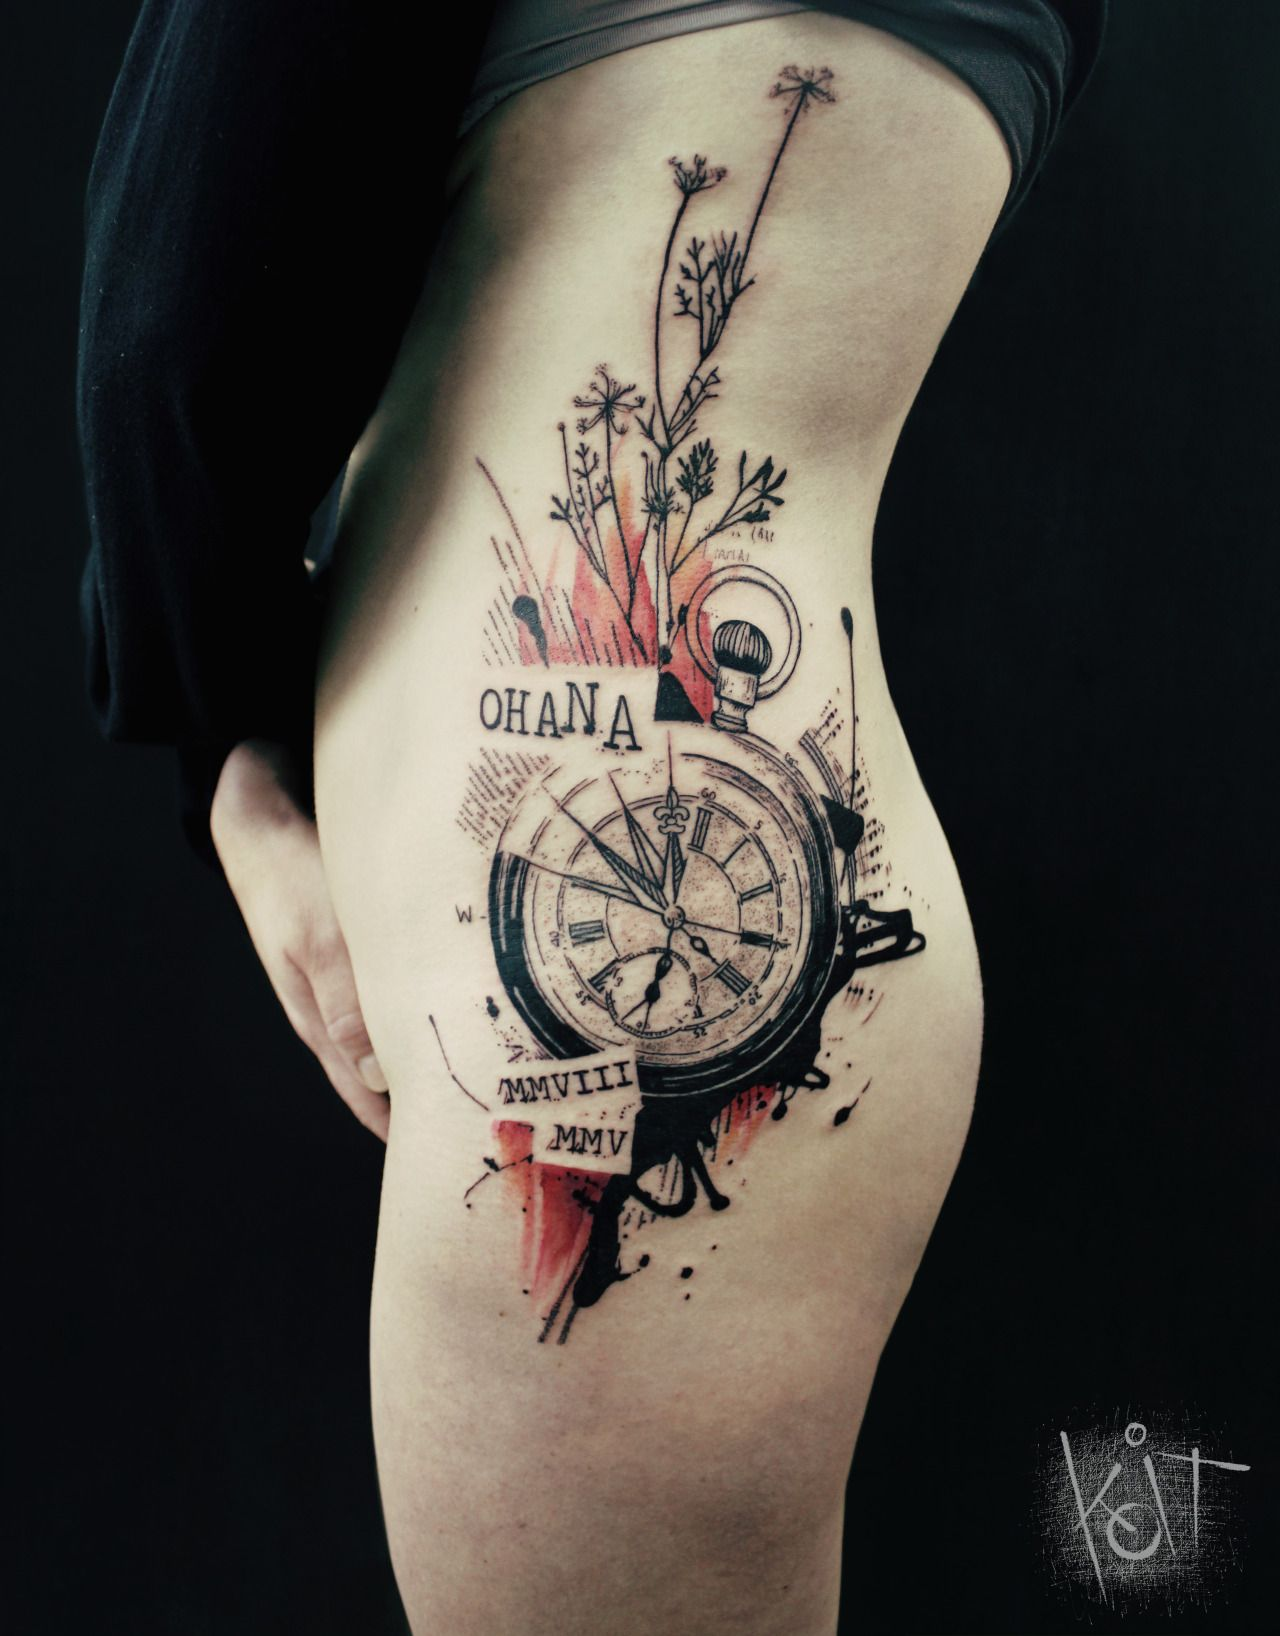 koit tattoo berlin graphic style compass in black red tattoo inspiration ideas germany. Black Bedroom Furniture Sets. Home Design Ideas